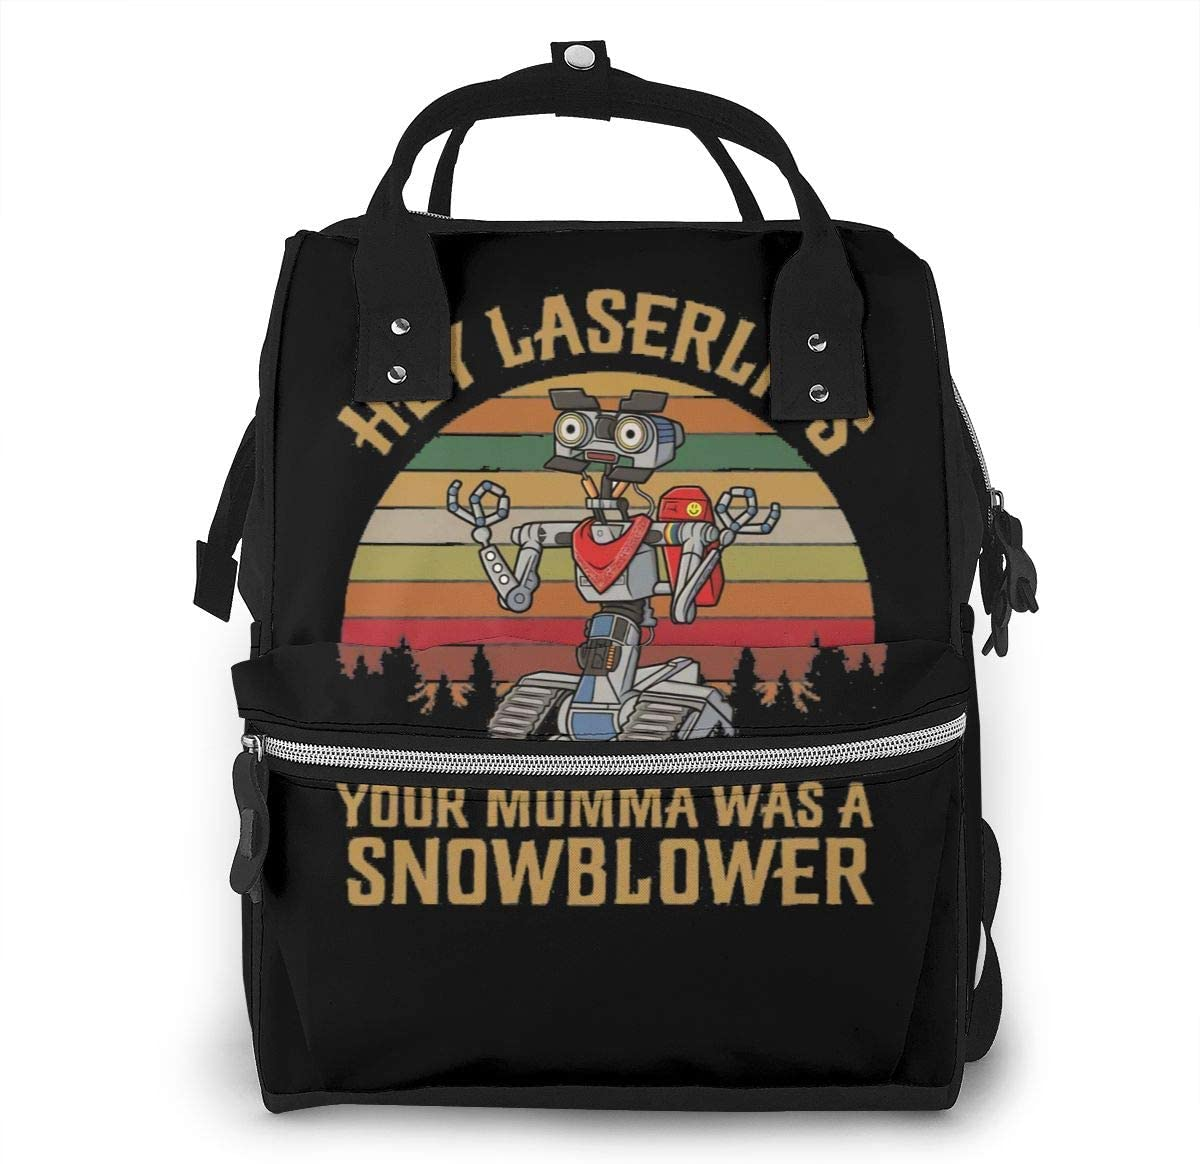 Sherrygeoffrey Hey Laser Lips Your Momma was A Snowblower Diaper Backpack Large Capacity Travel Bag